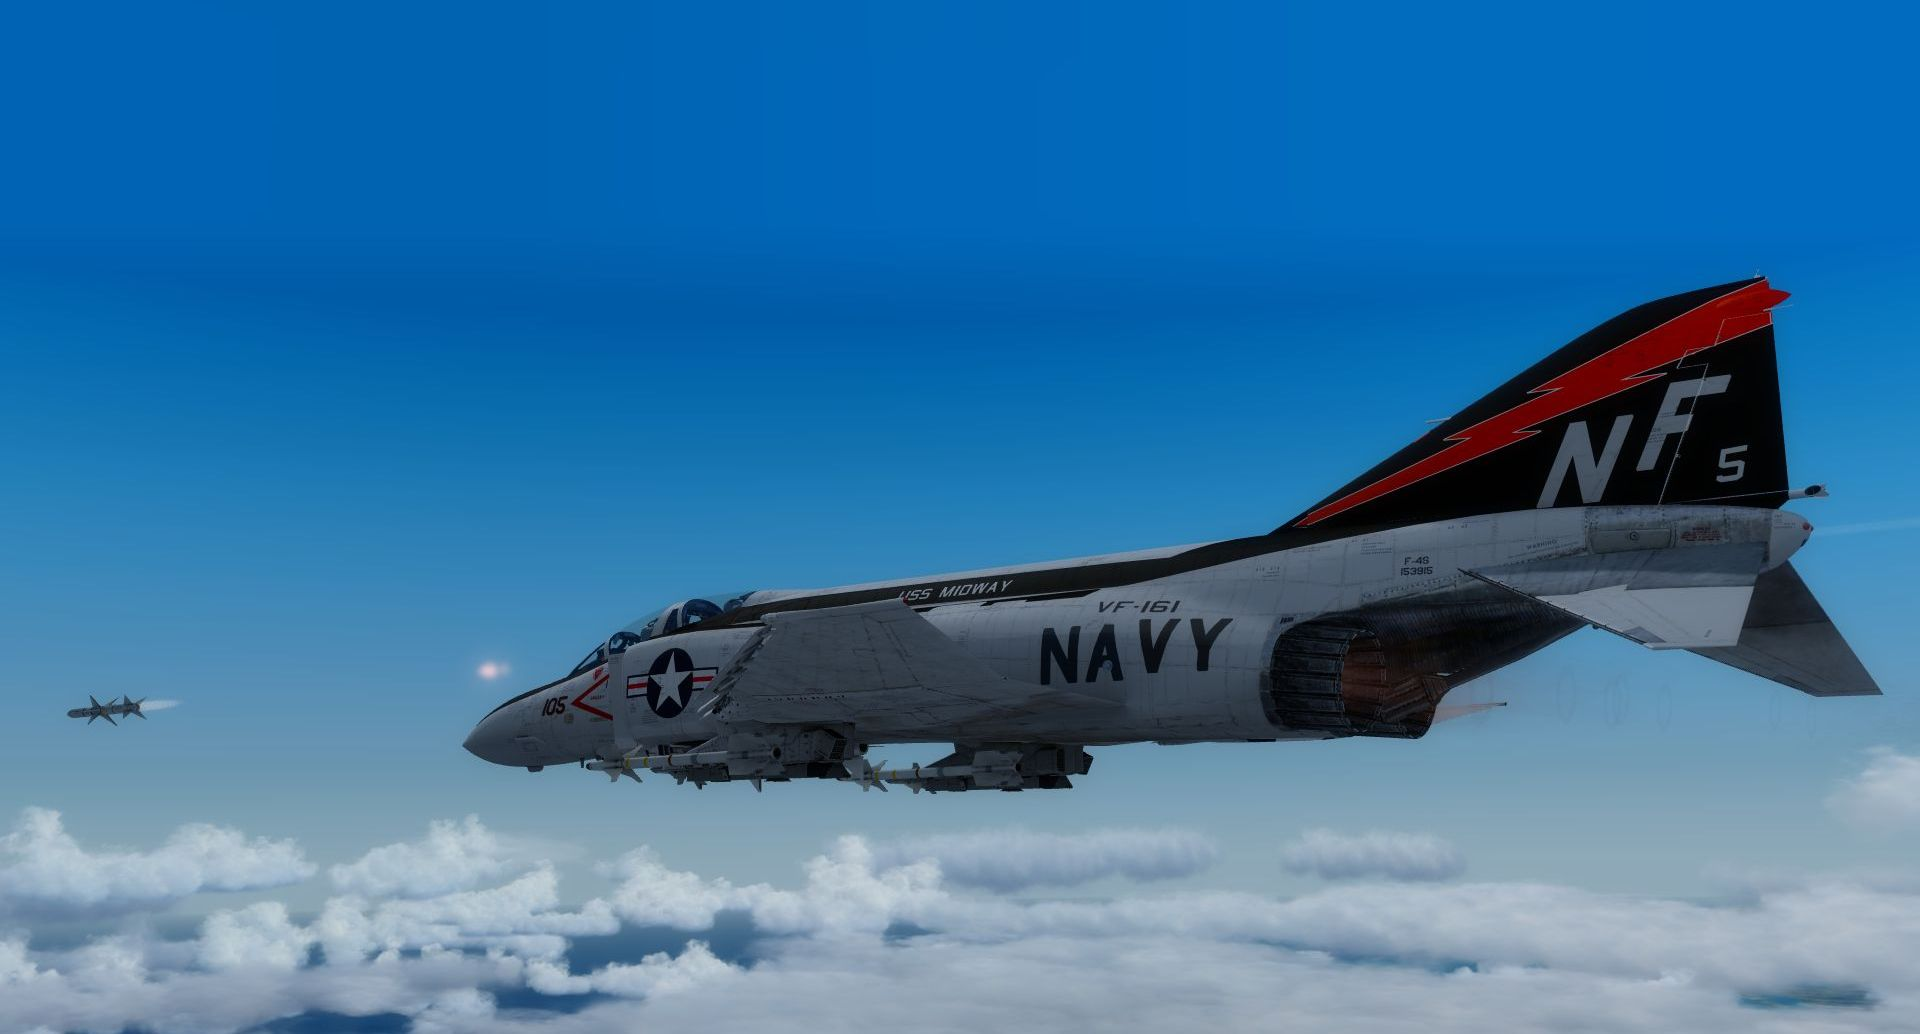 MILVIZ - ADVANCED SERIES F-4J/S 鬼怪式战斗机 II 高级版 FSX P3D